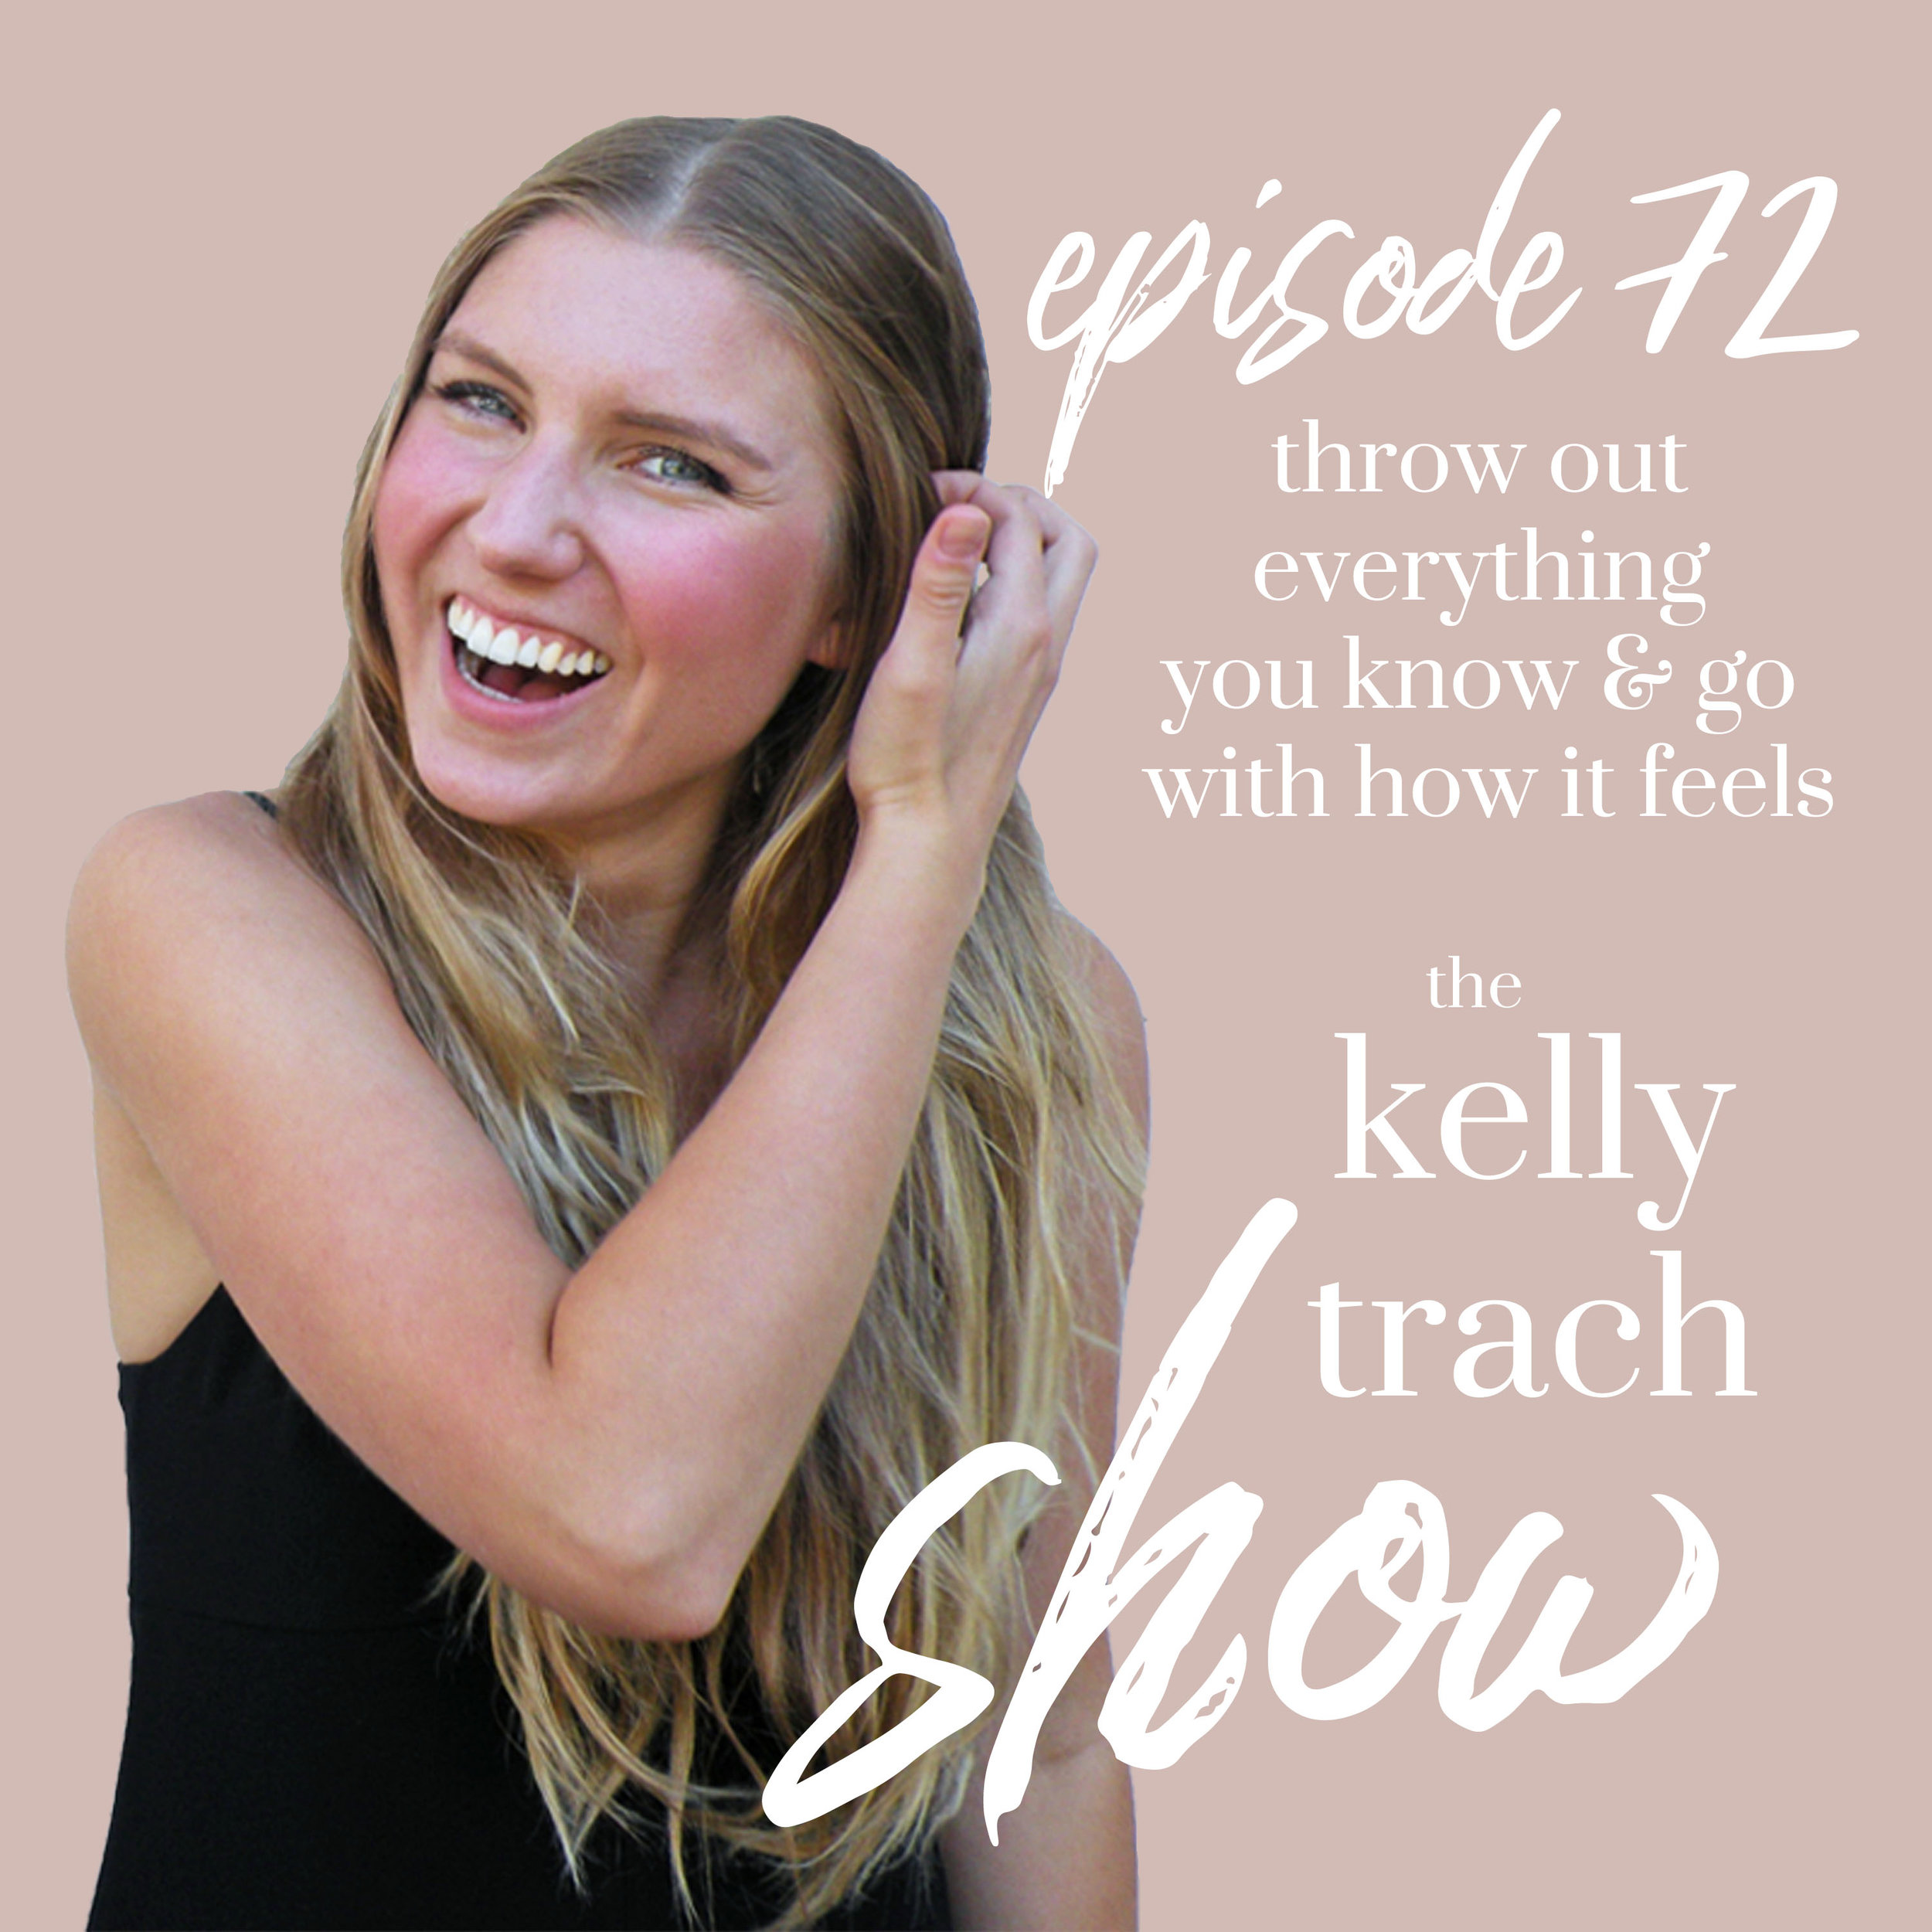 72 - Throw Out Everything You Know & Go With How it Feels - The Kelly Trach Show Podcast.jpg